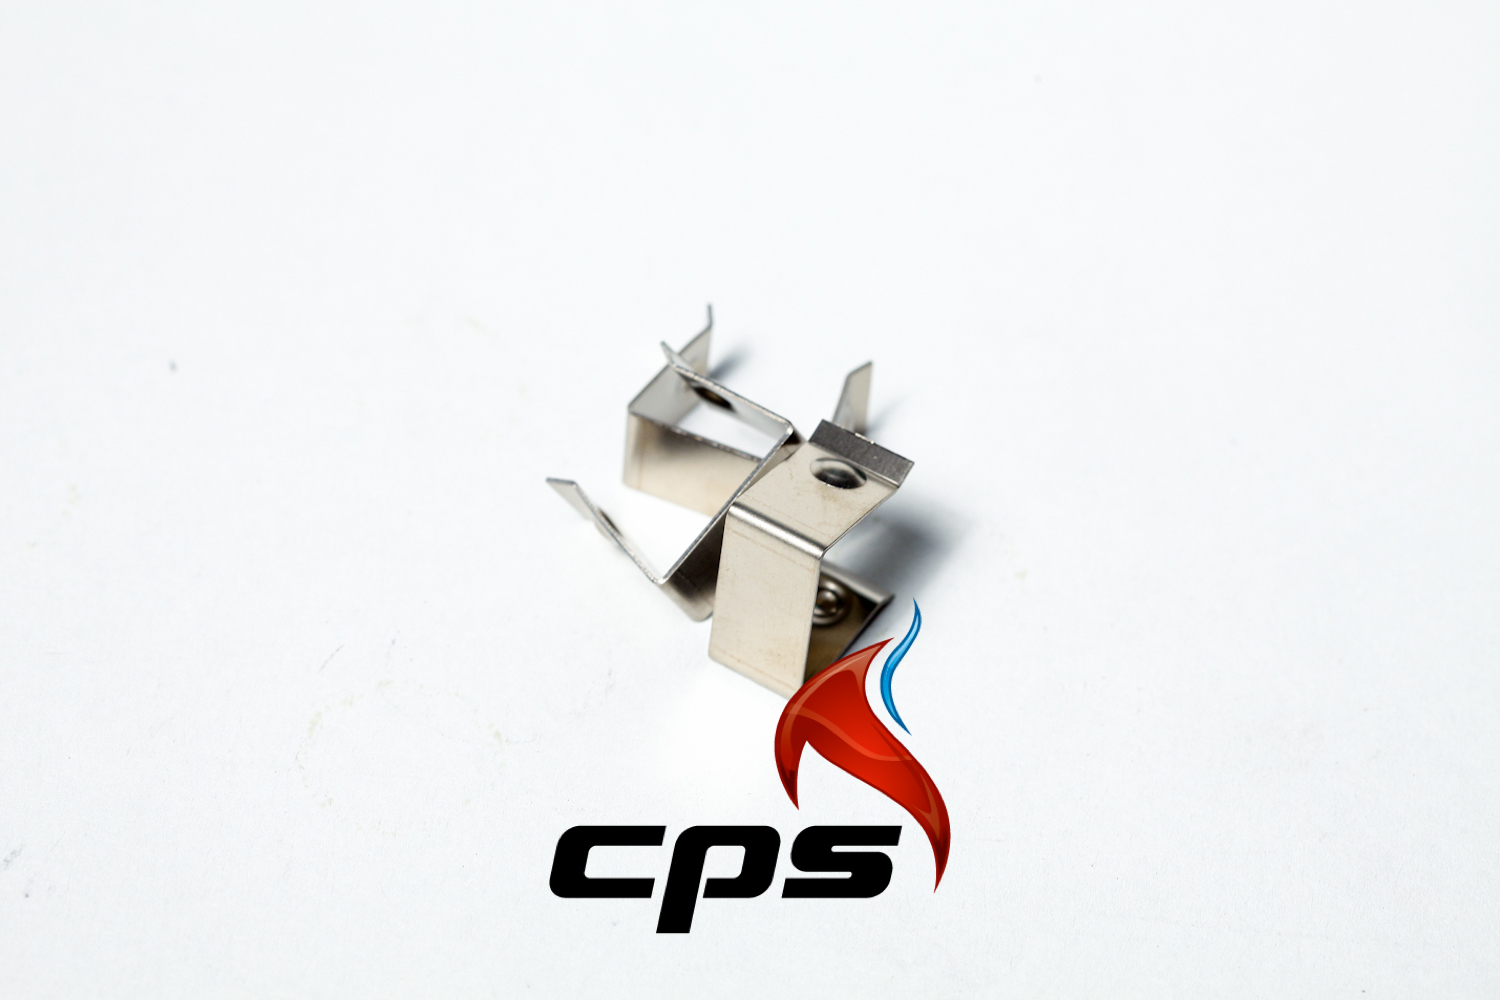 2627700 - Garland - CPS